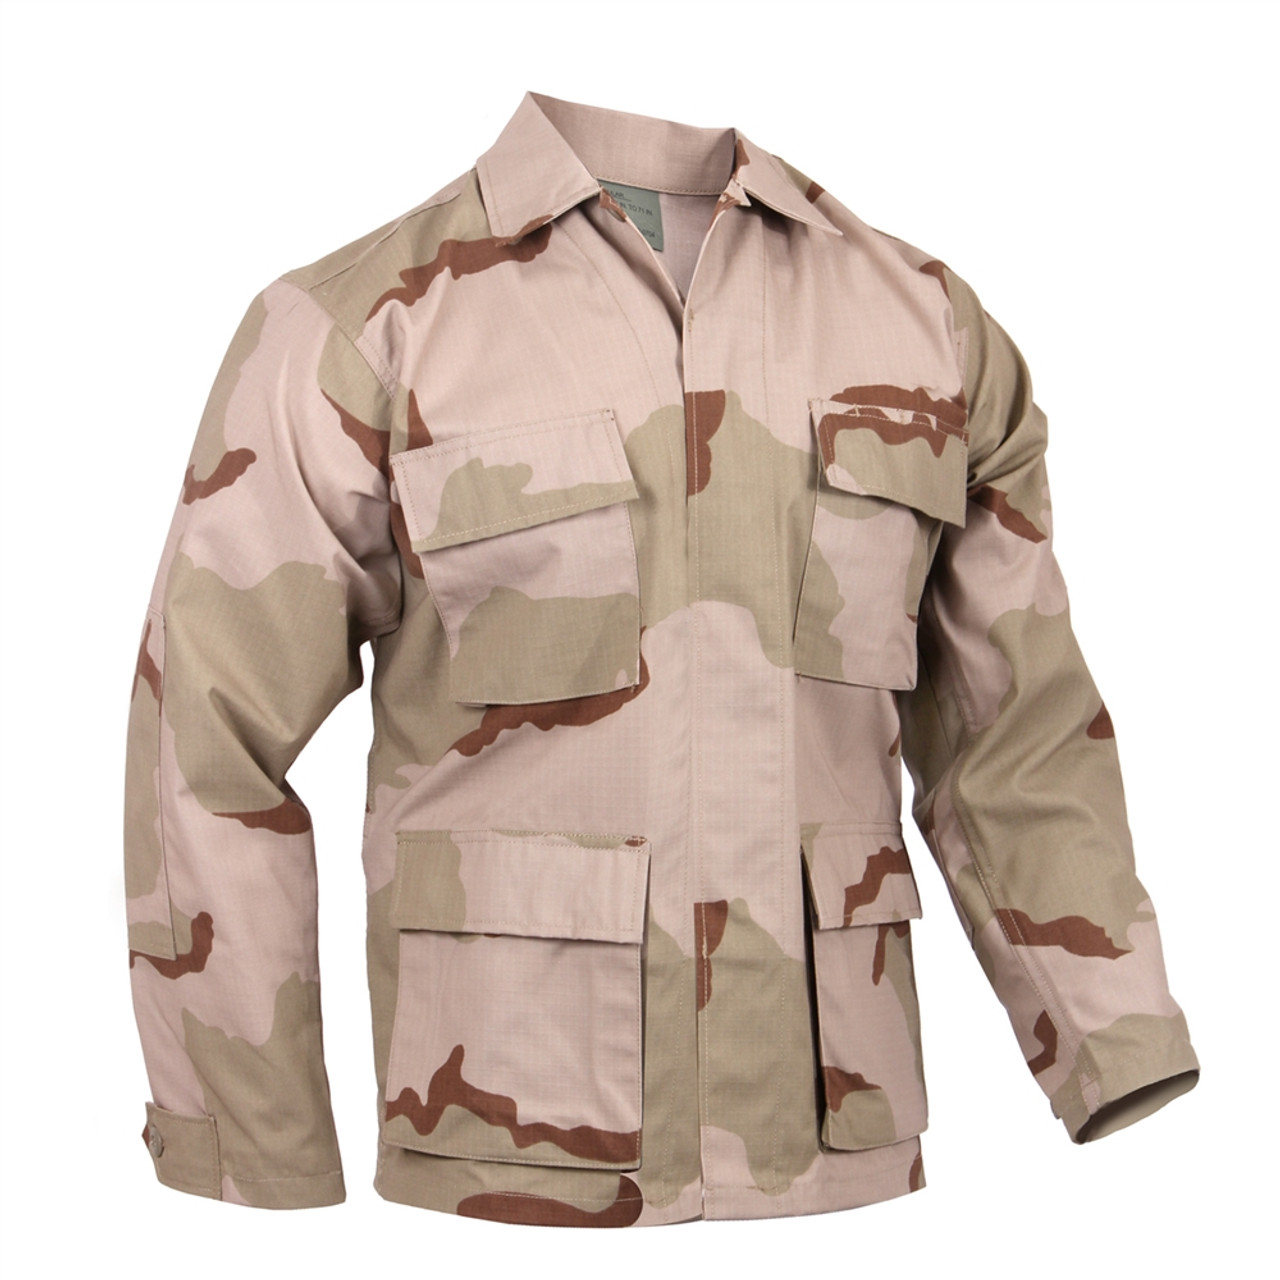 DCU Shirt - Tri Color Desert from Hessen Tactical